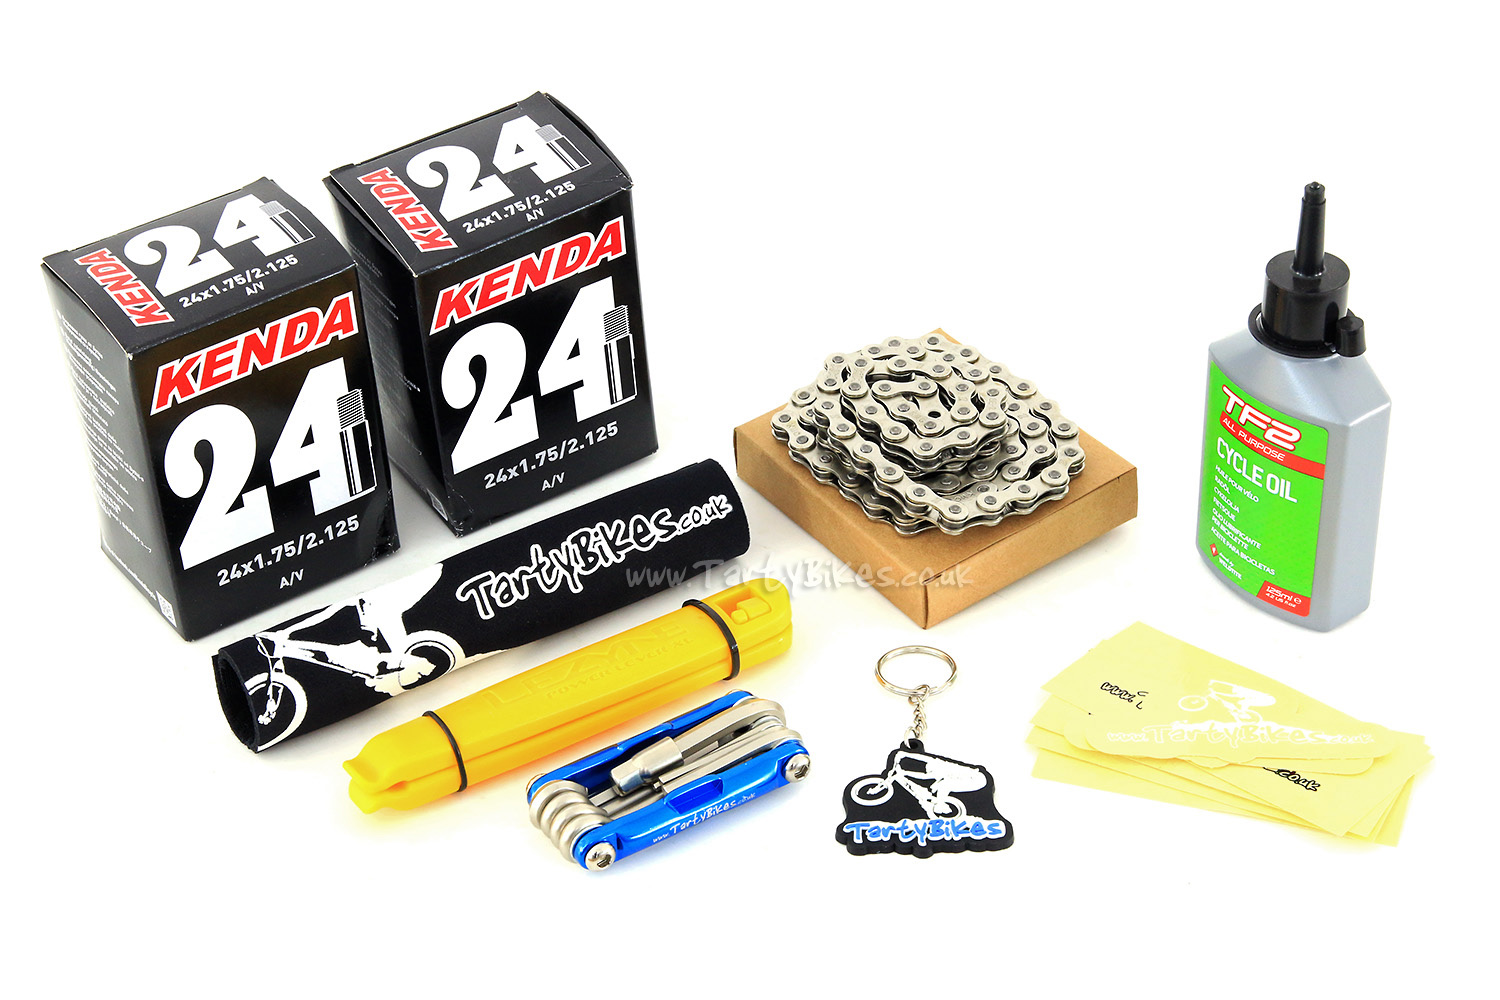 TartyBikes Essential Gift Pack